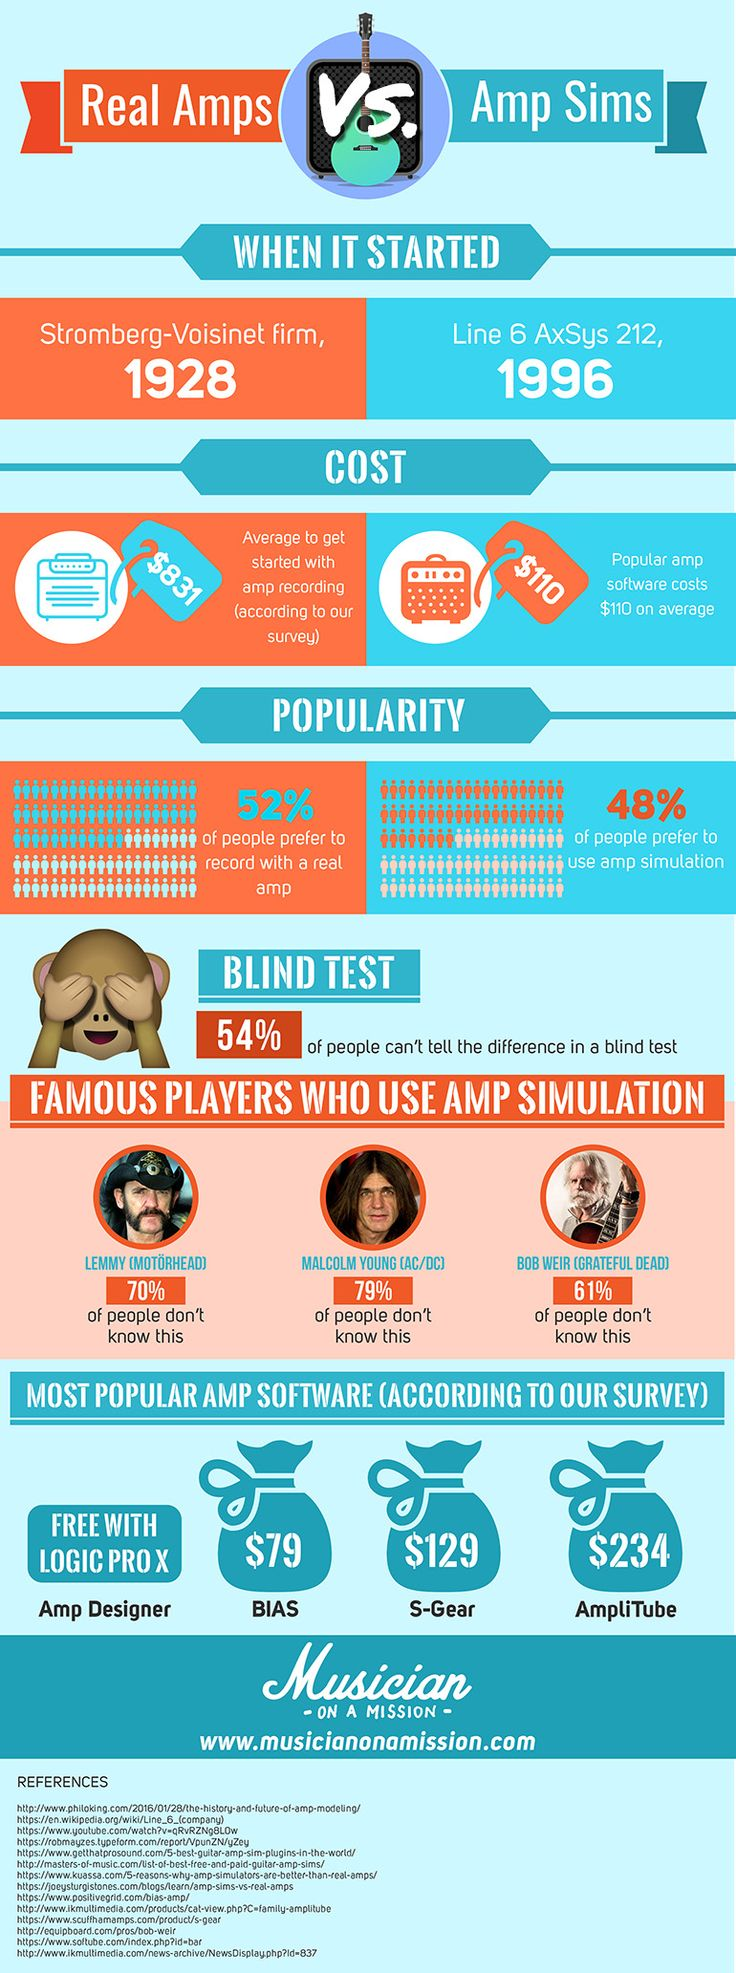 Amp Sims vs. Real Amps